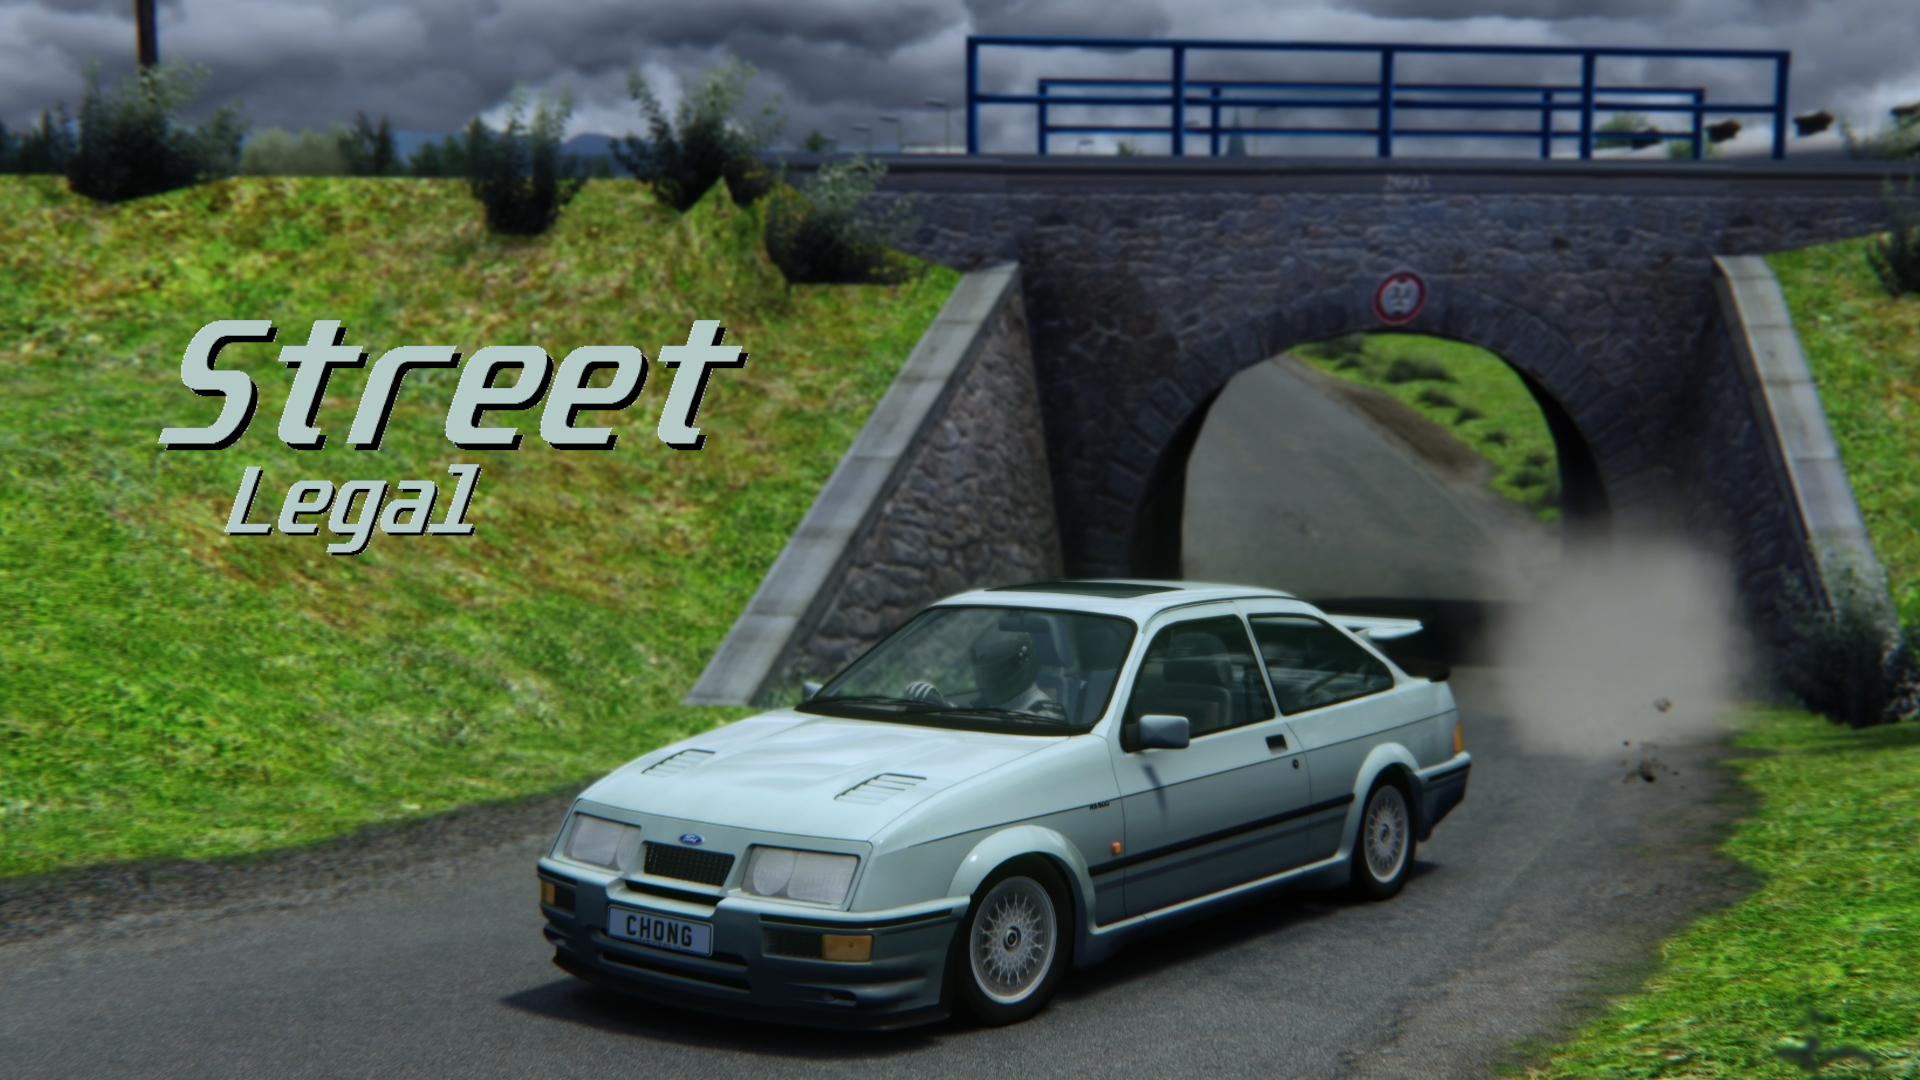 rs500 street picture.jpg